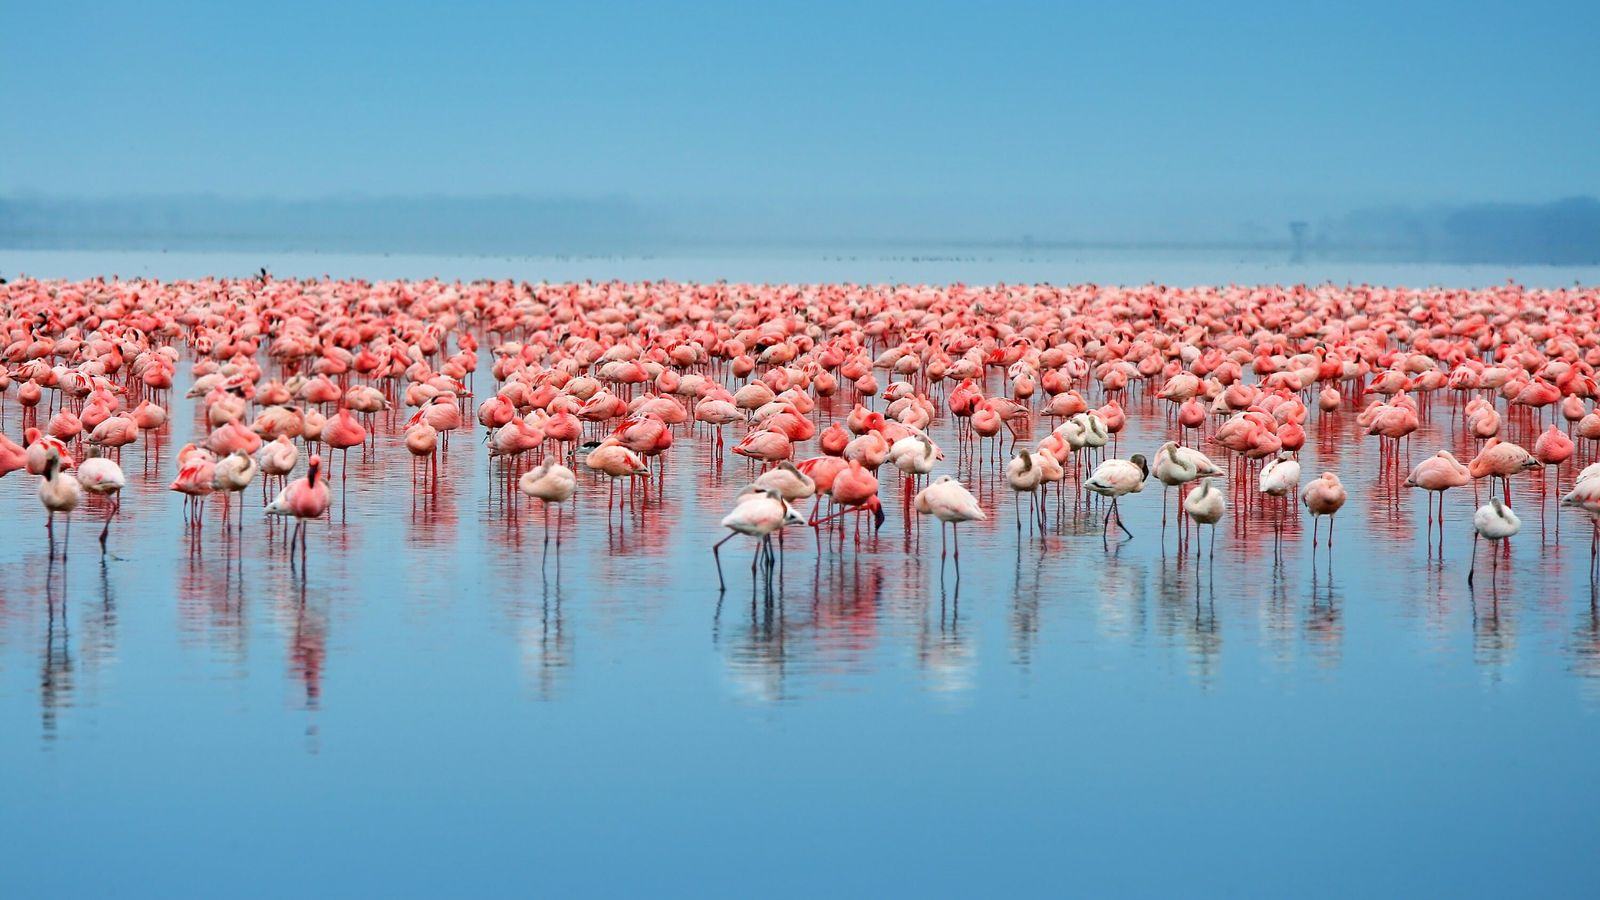 Home to the greatest bird show on earth, Lake Nakuru is the place to see the ...